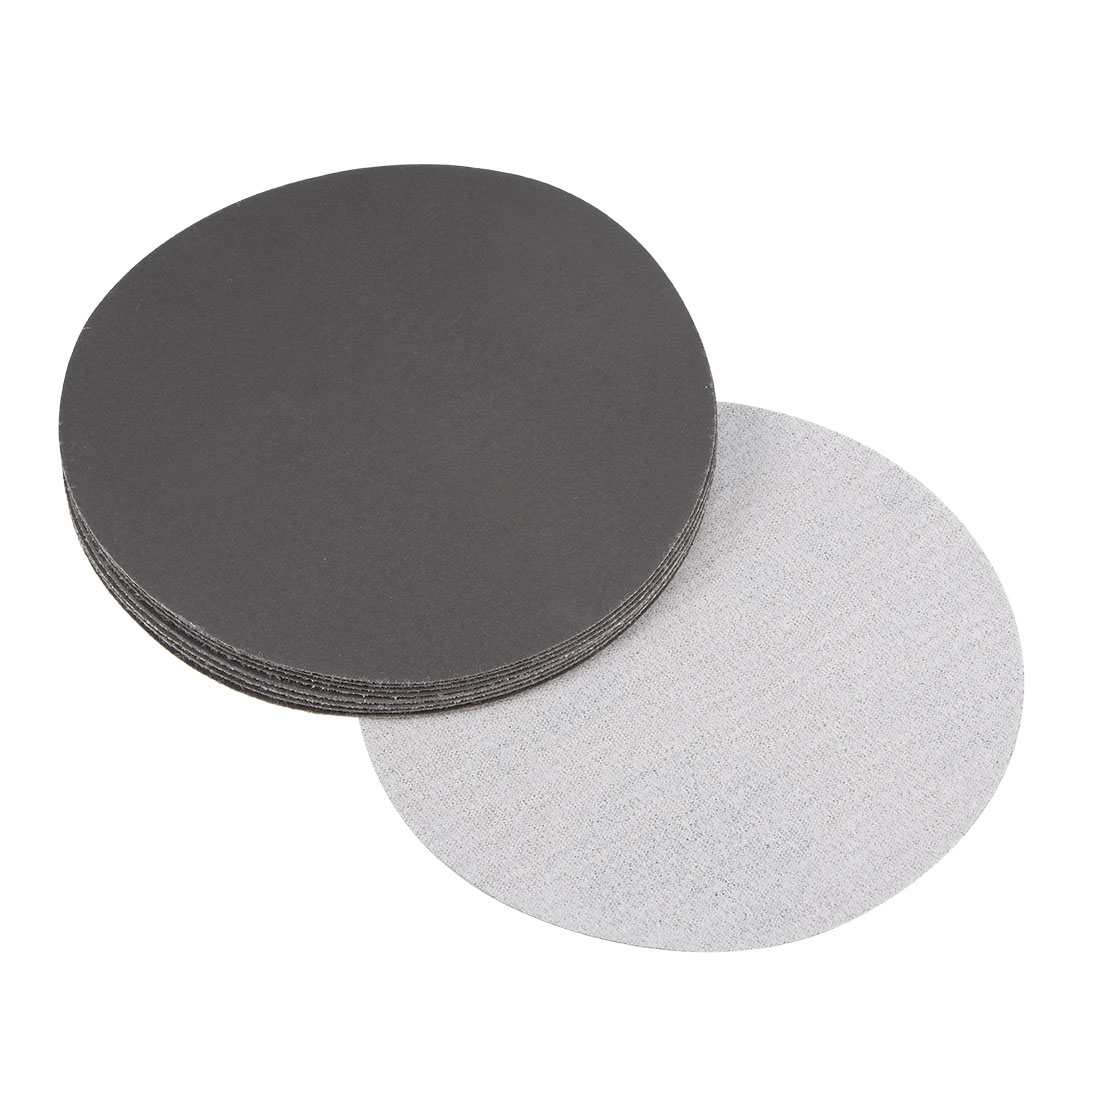 5 inch Wet Dry Discs 1000 Grit Hook and Loop Sanding Disc Silicon Carbide 10pcs